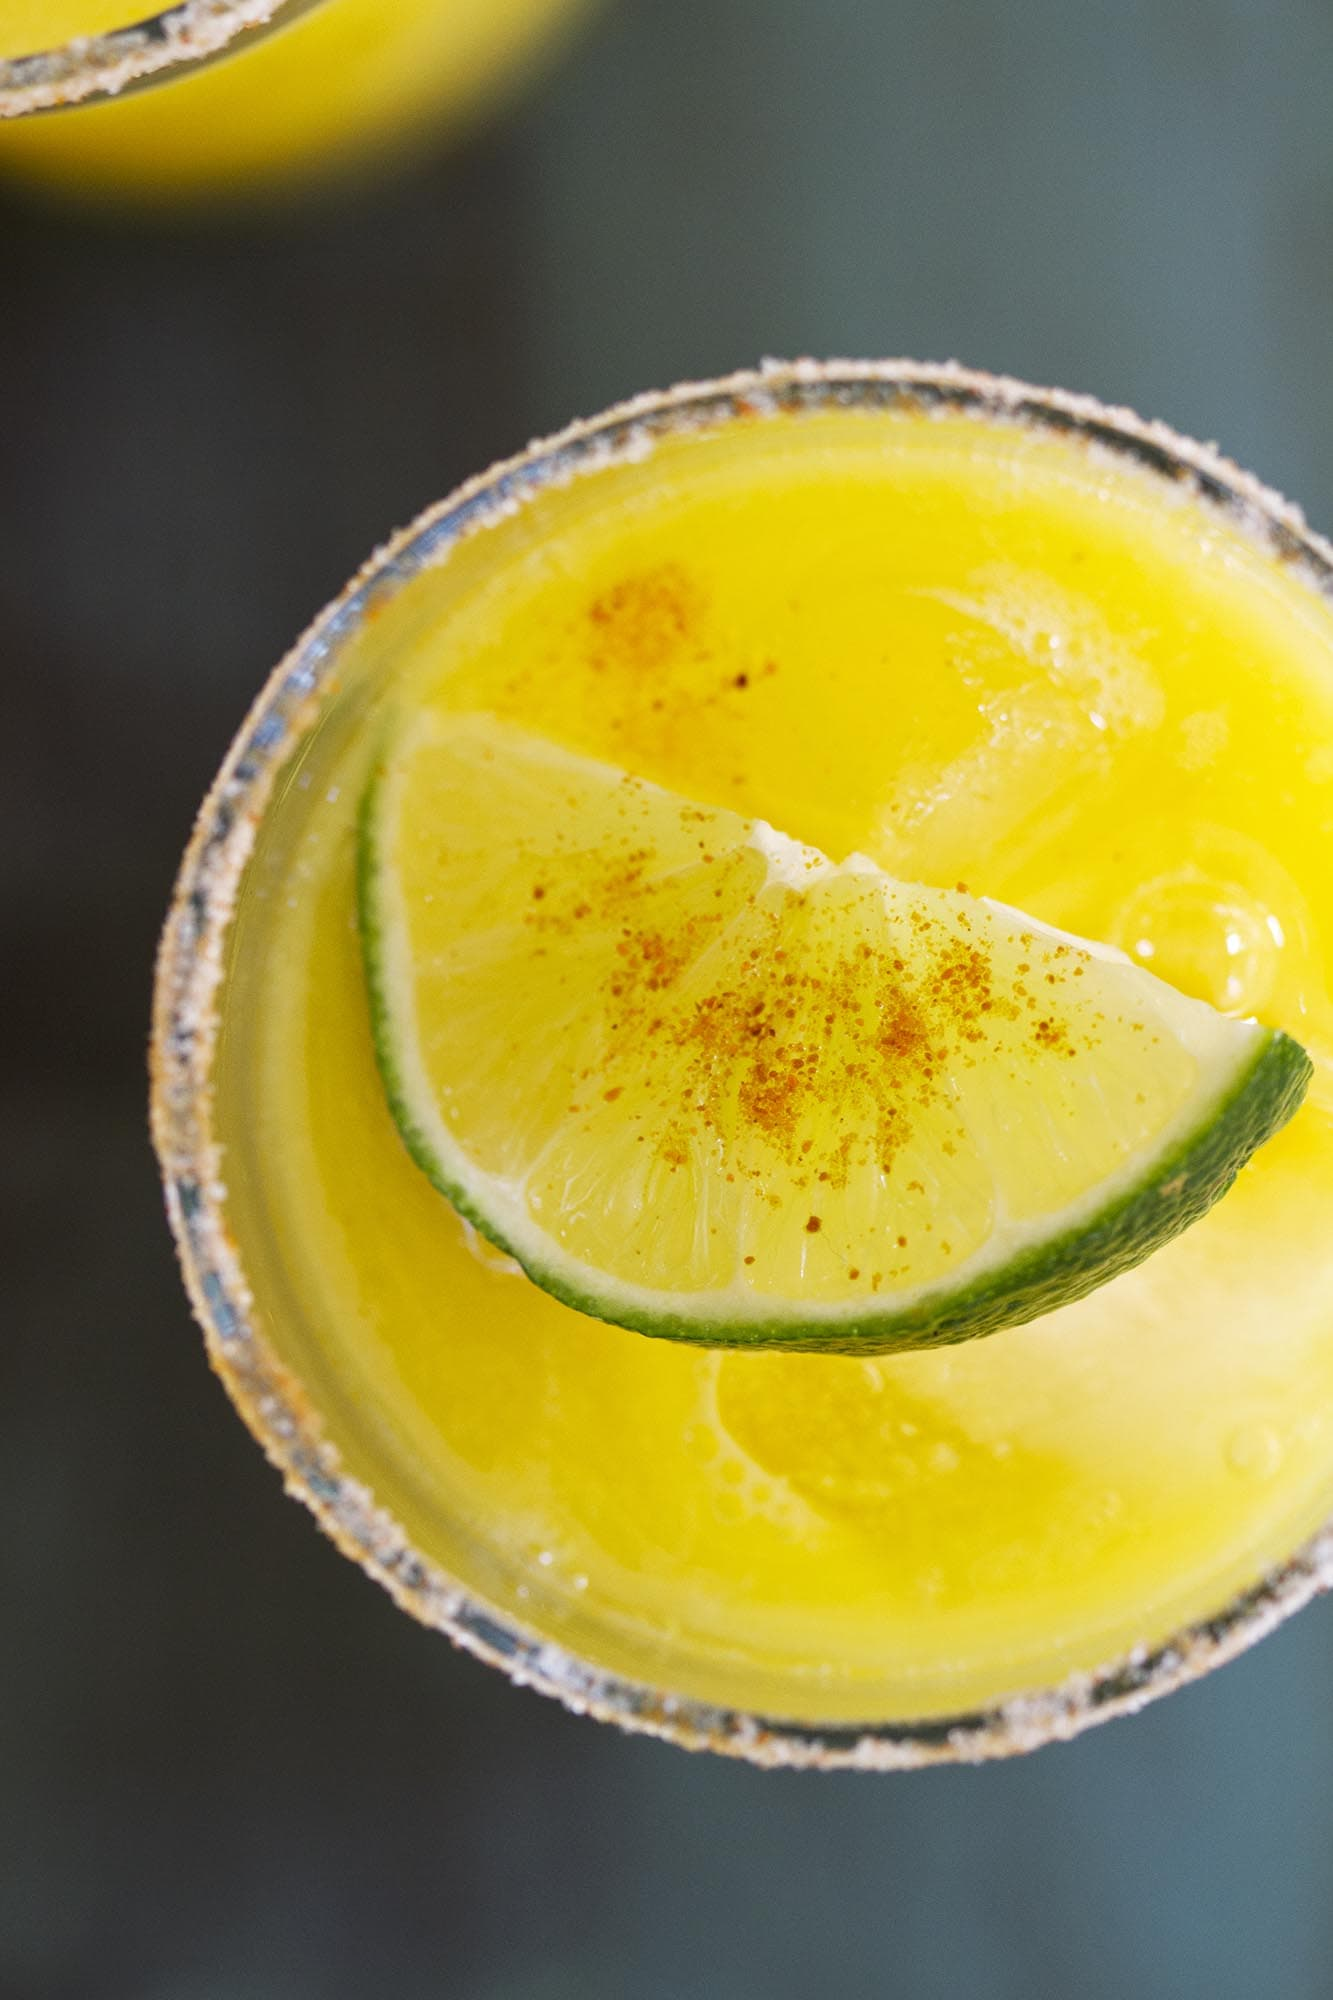 overhead view of mango chili lime agua fresca in glass